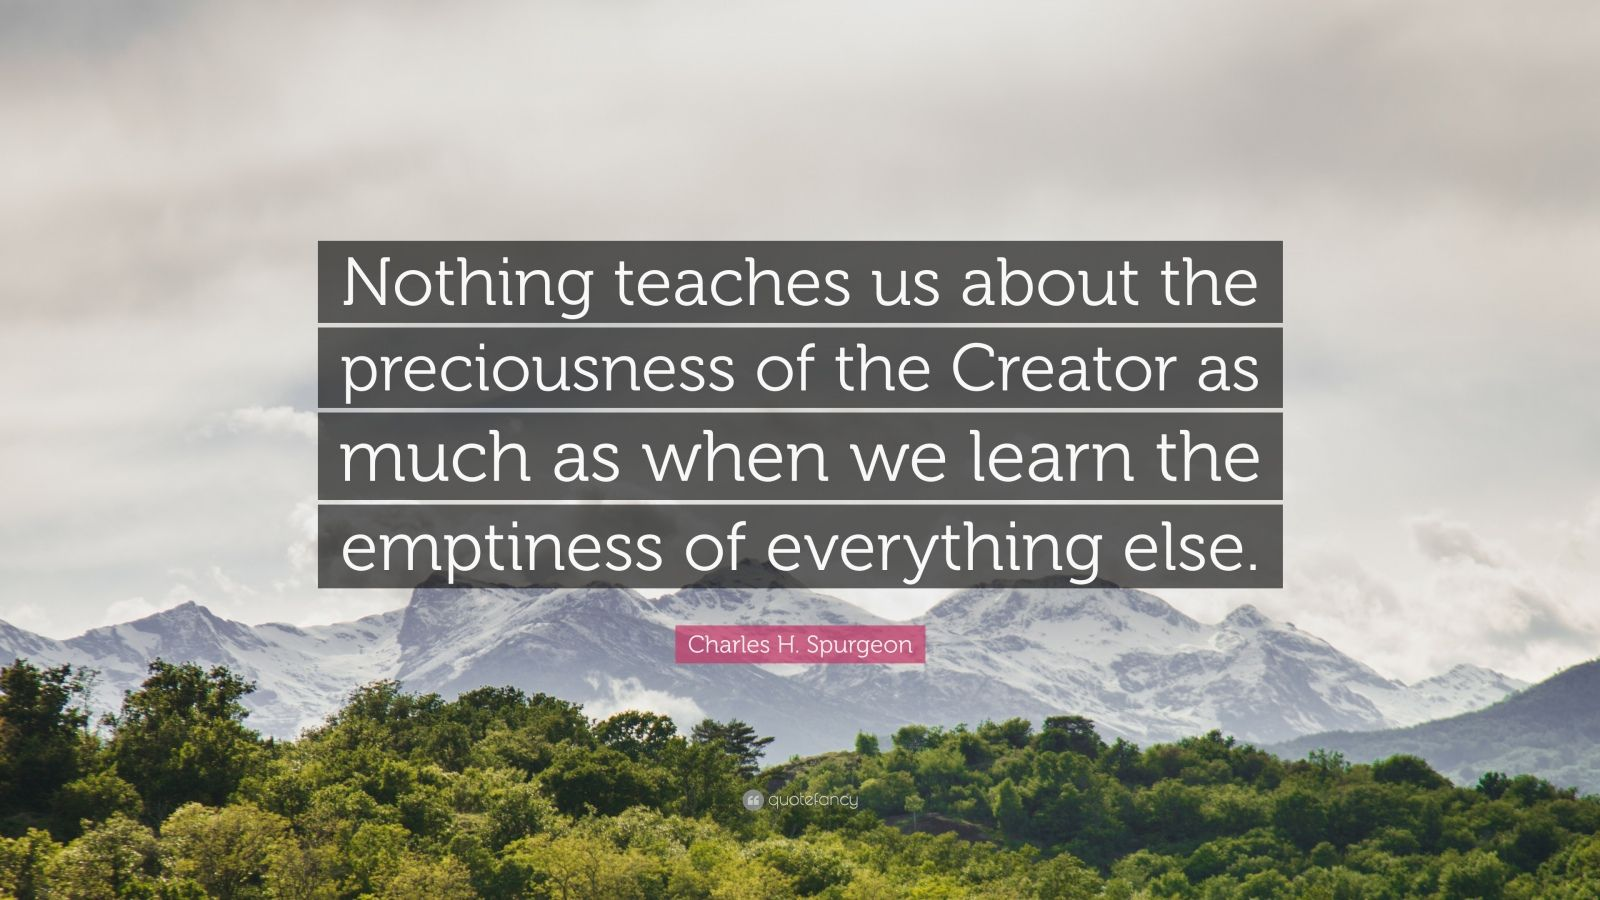 """Charles H. Spurgeon Quote: """"Nothing teaches us about the preciousness of the Creator as much as when we learn the emptiness of everything else."""""""